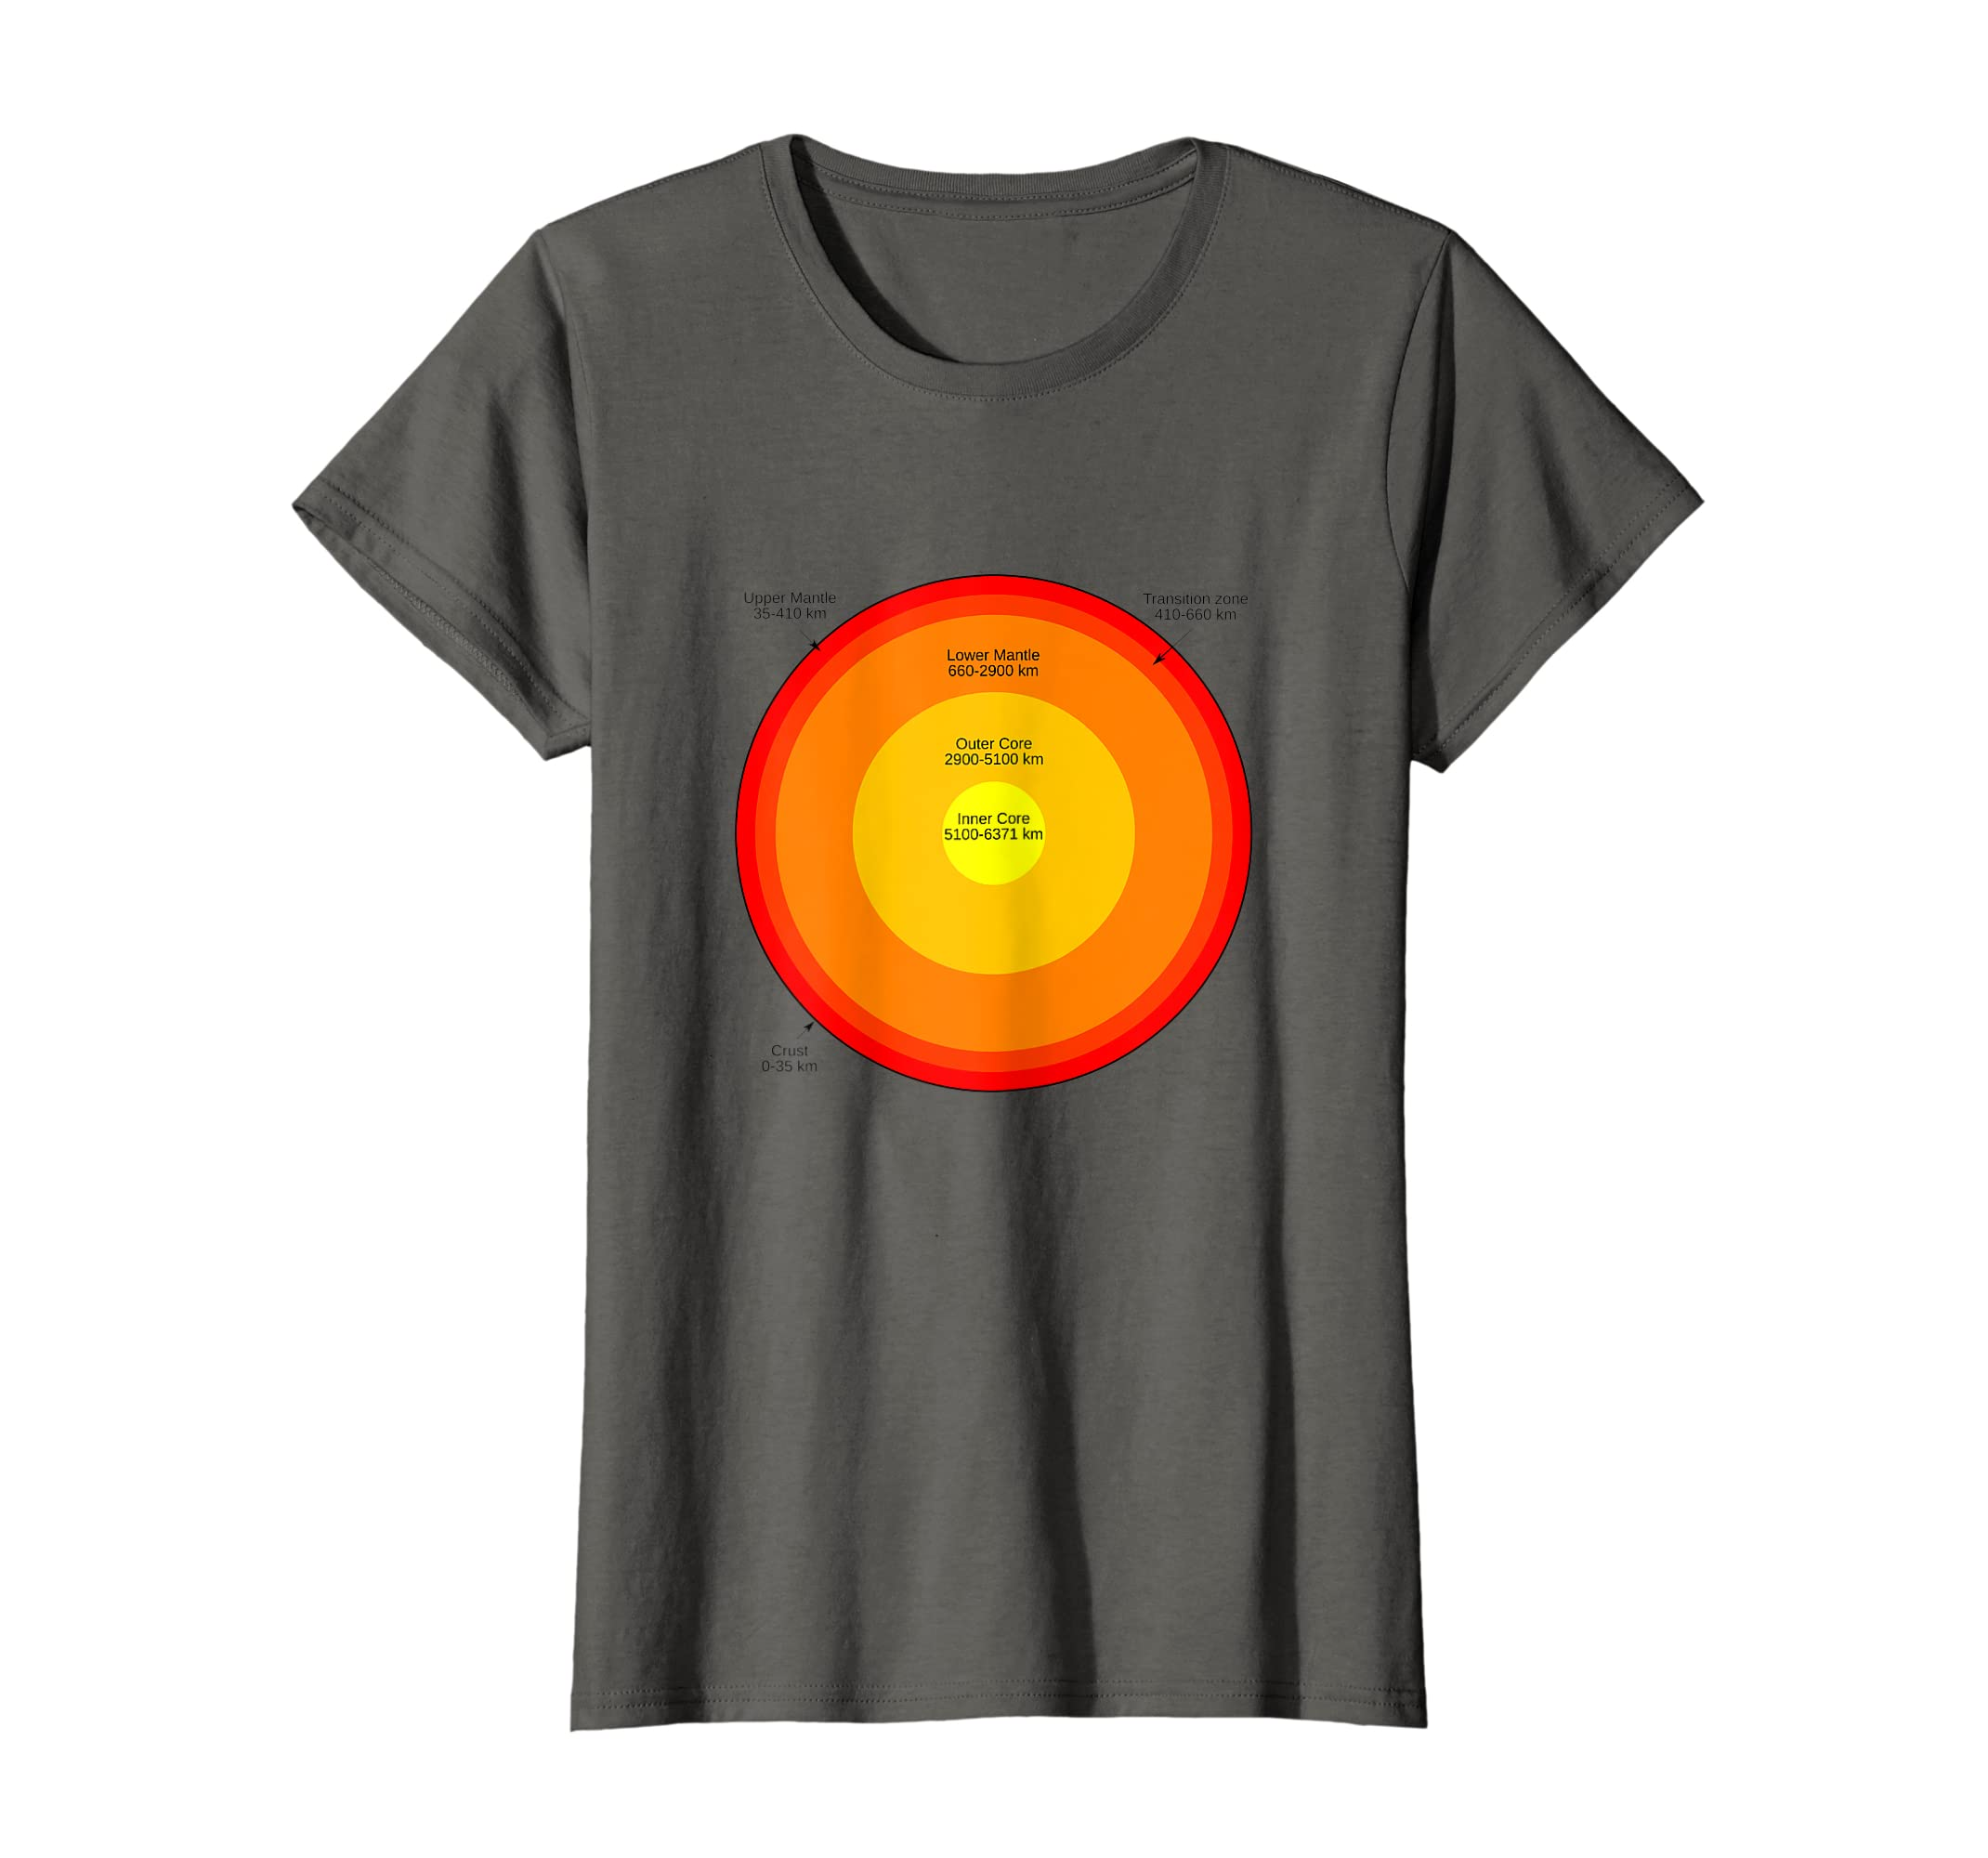 amazon com: labeled diagram of earth's layers t-shirt fun science buff:  clothing